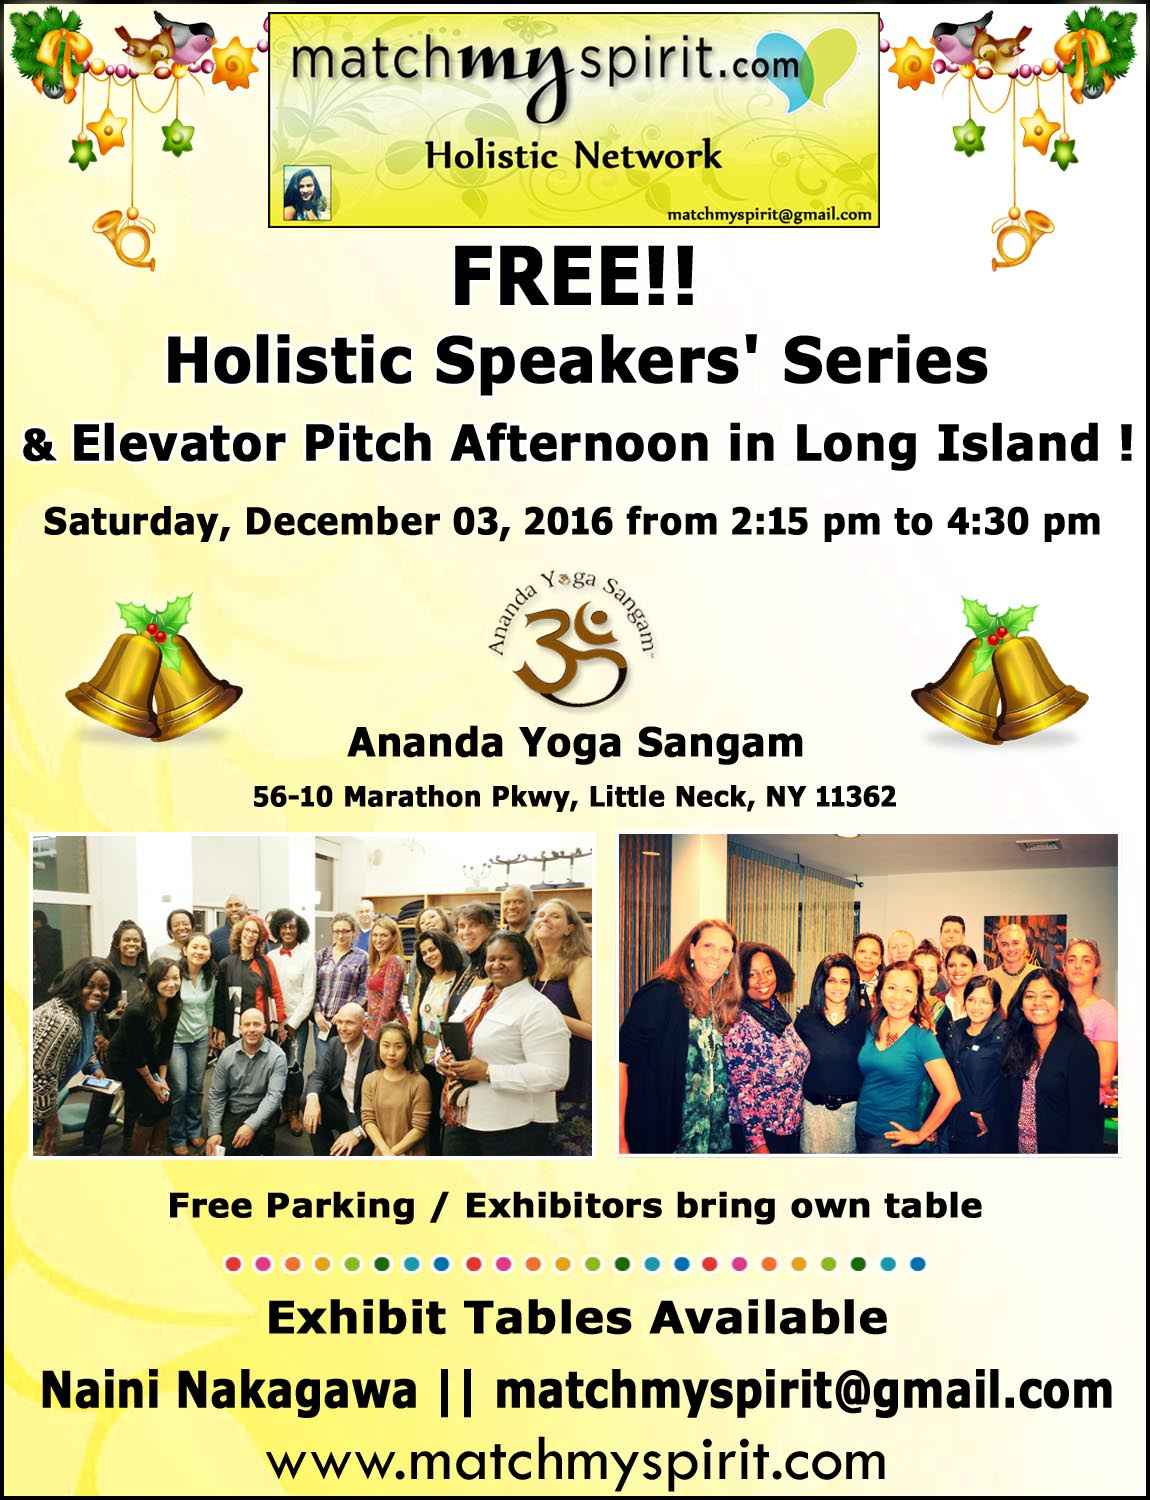 FREE!! Holistic Speakers' Series & Elevator Pitch Afternoon in Long Island !